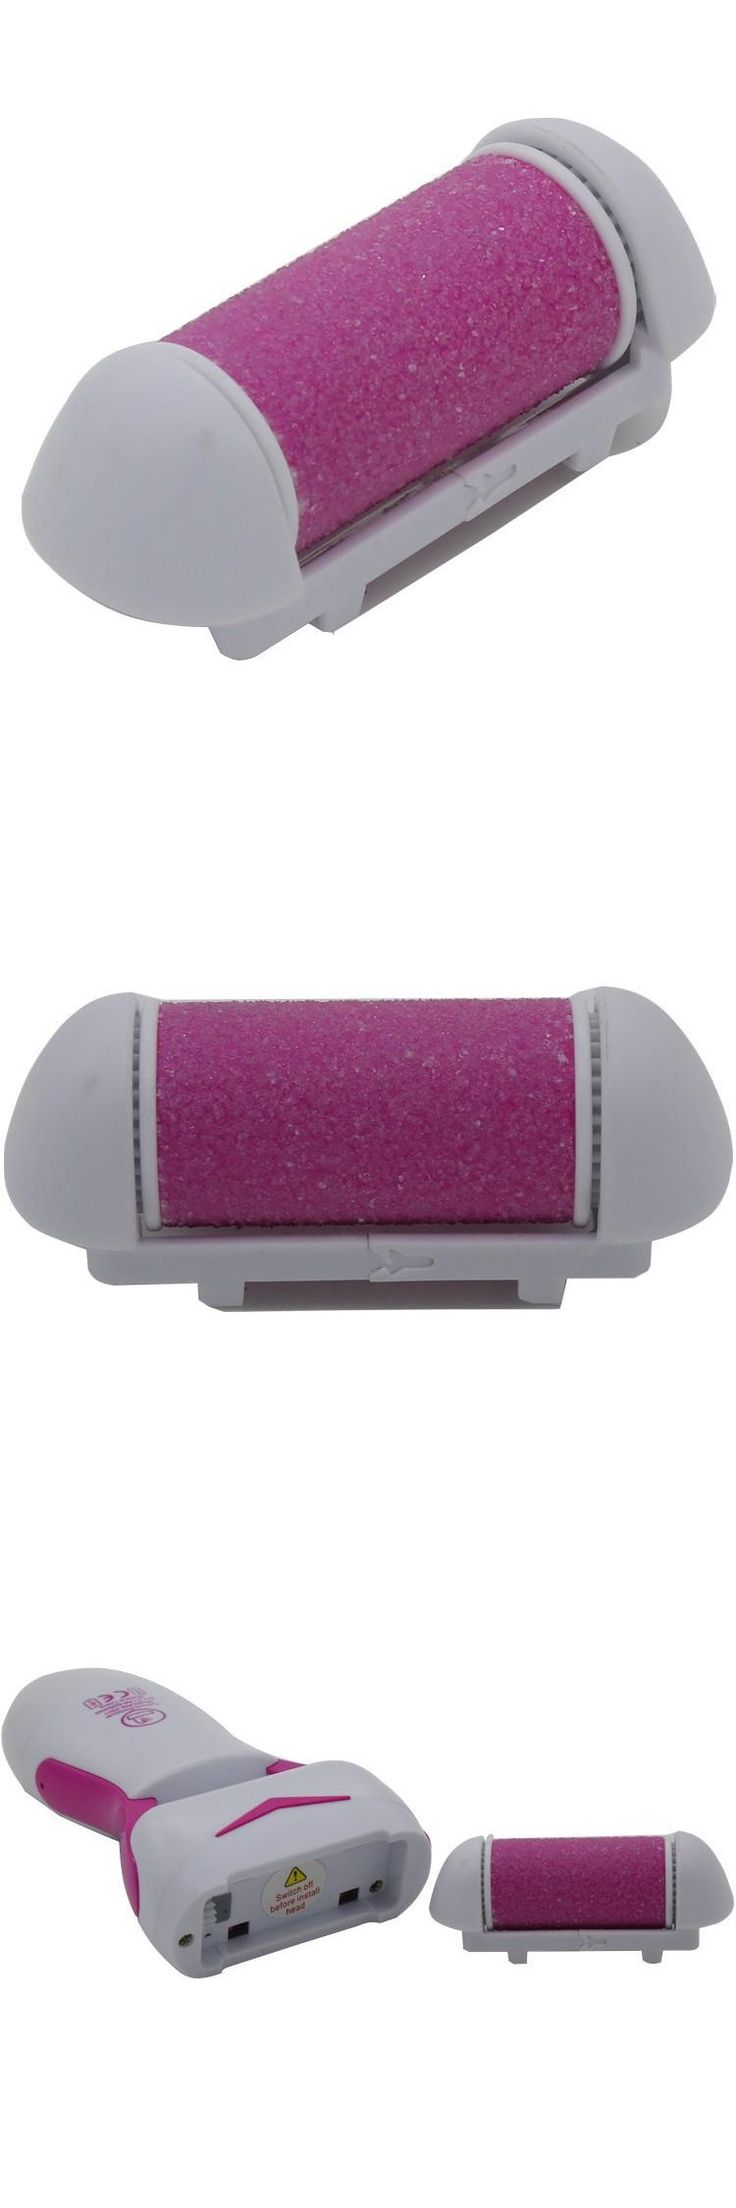 [Visit to Buy] Got Sale 1PC Roller Grinding Head Replacement KM2500 KM2501 Feet Dead Skin Smoother Pedicure Exfoliating Heel Removal Accessory #Advertisement